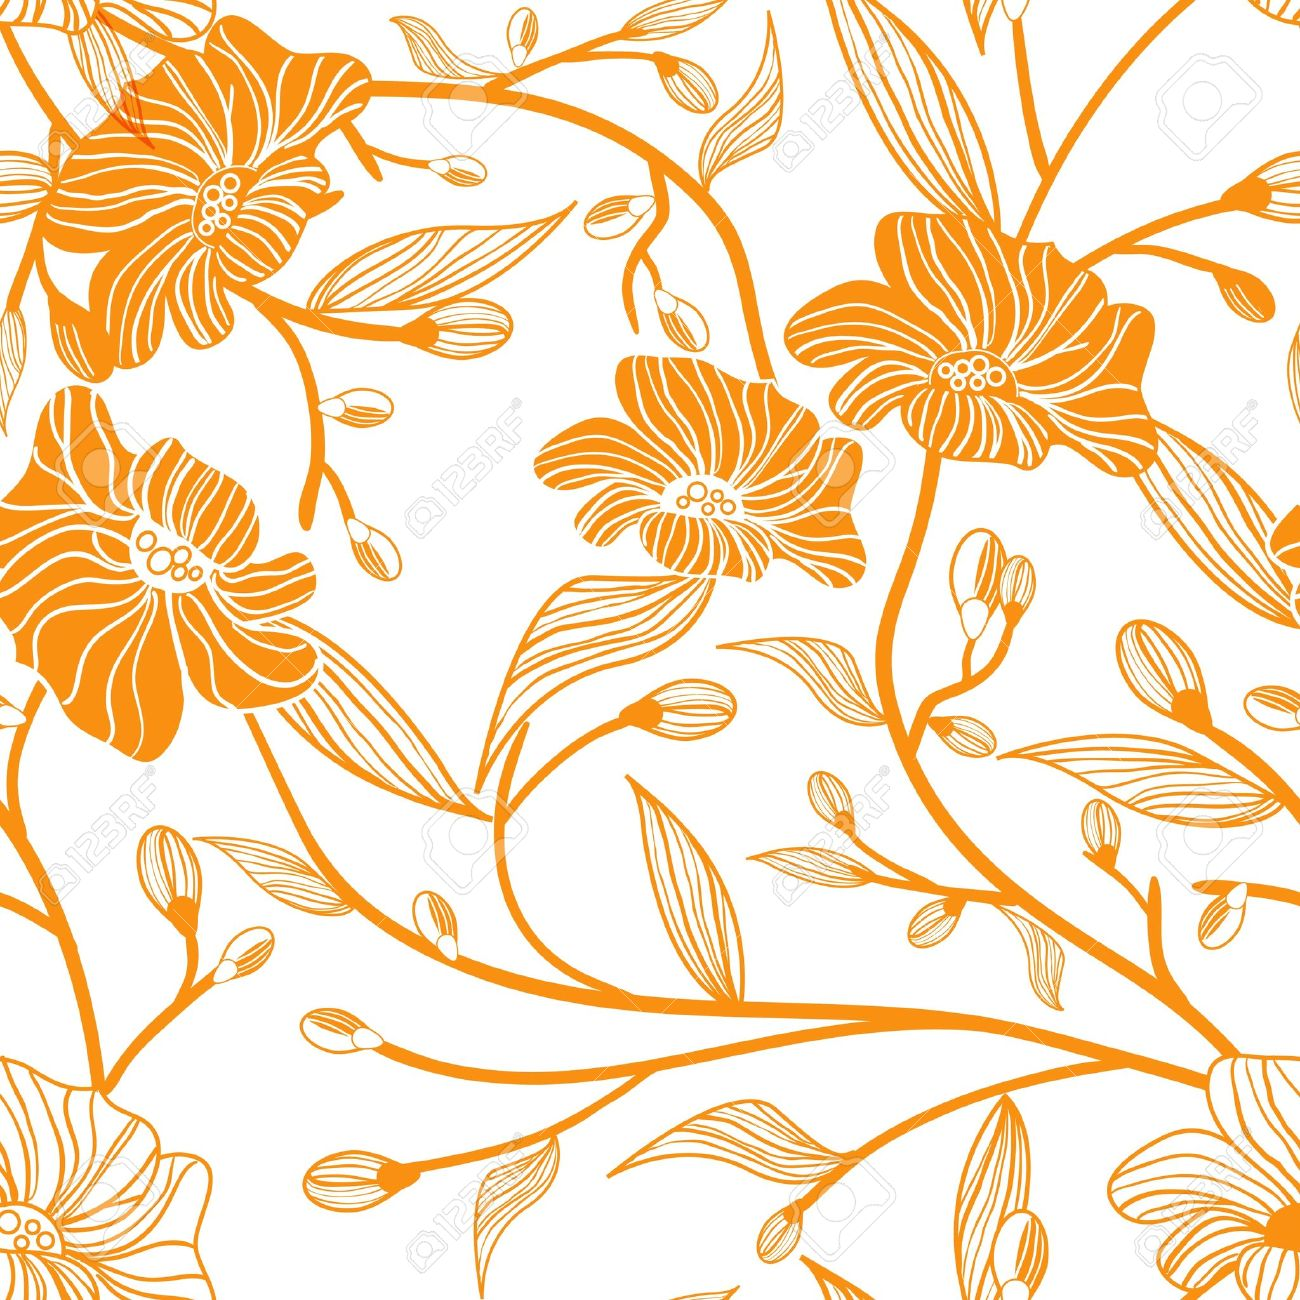 Abstract Light Vector Background With Drawing Orange Flowers